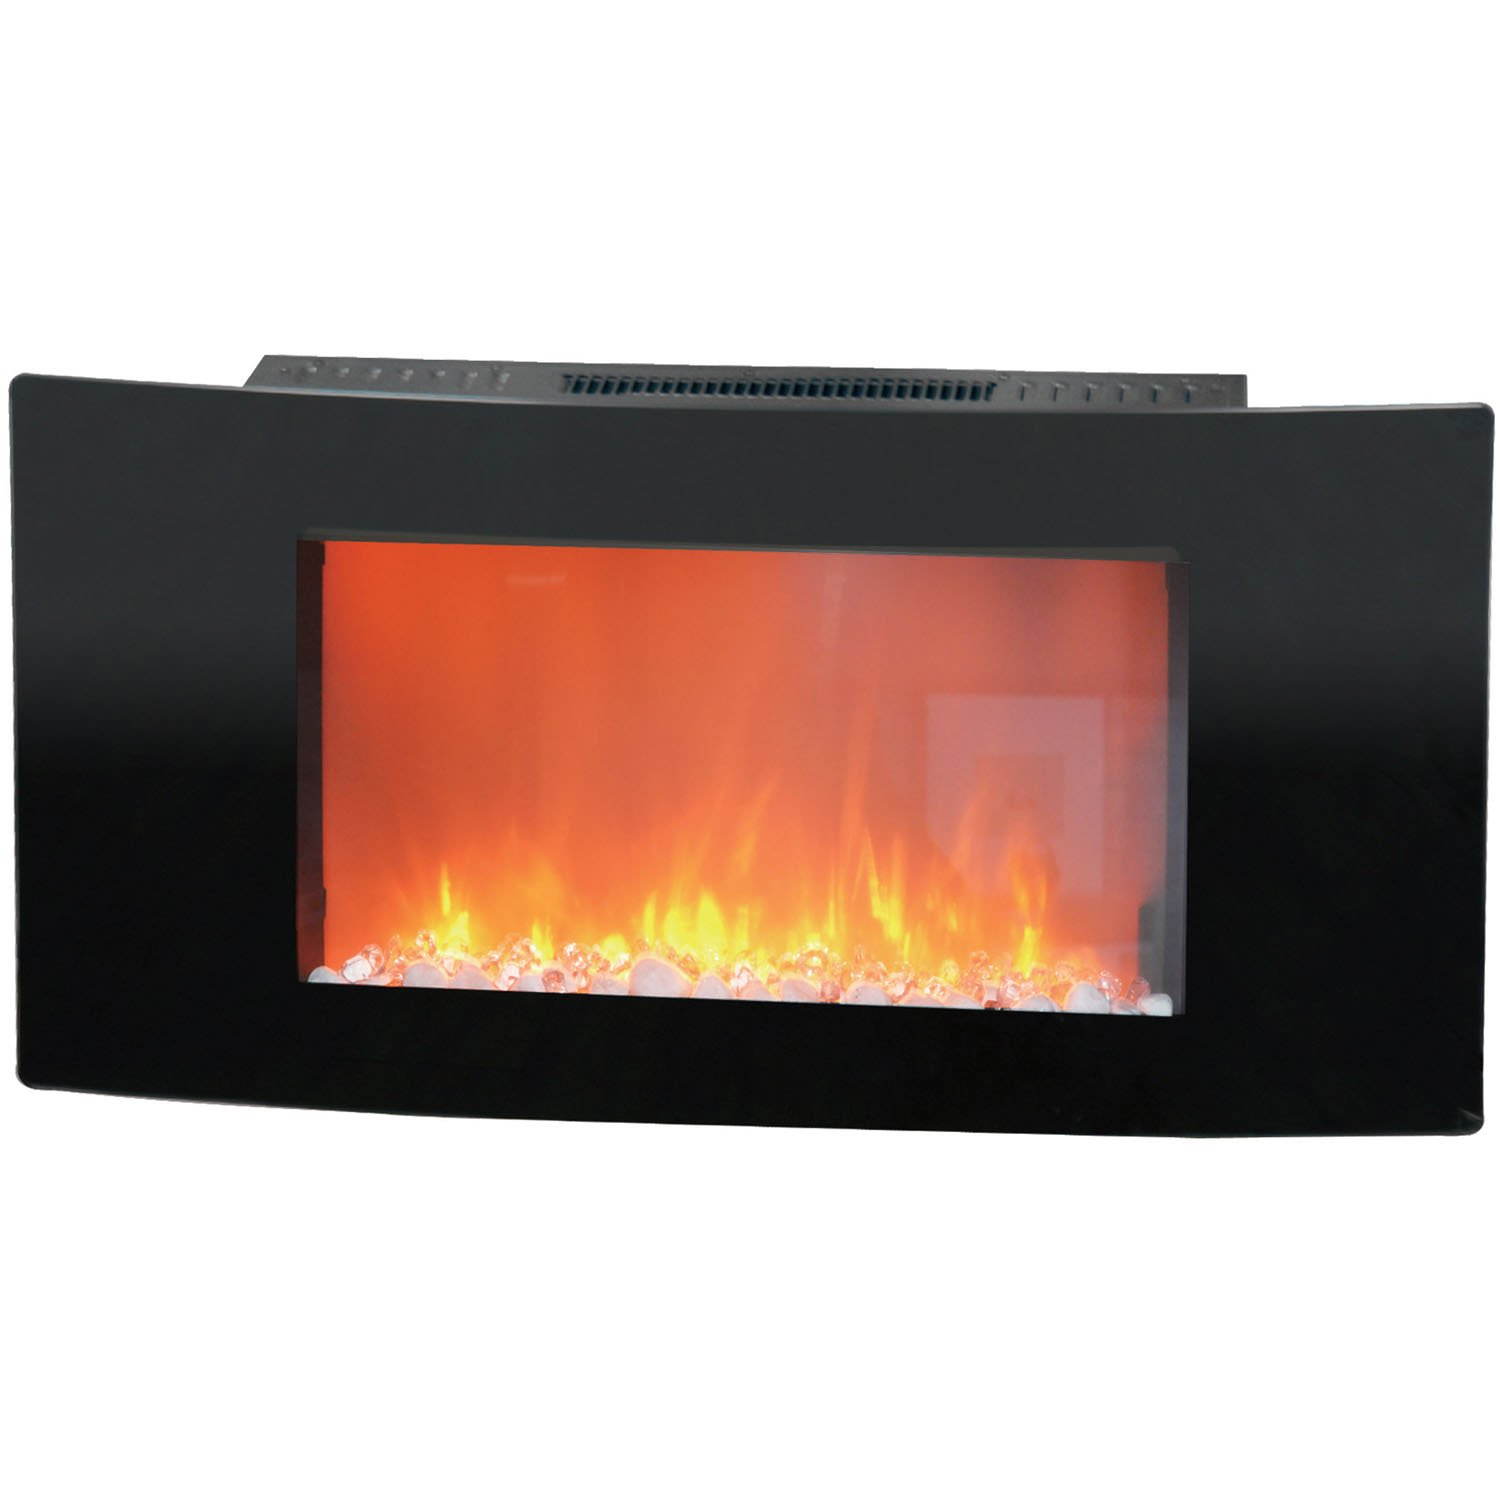 Cambridge Callisto 35 In. Wall-Mount Electronic Fireplace with Curved Panel and Crystal Rocks CAM35WMEF-1BLK